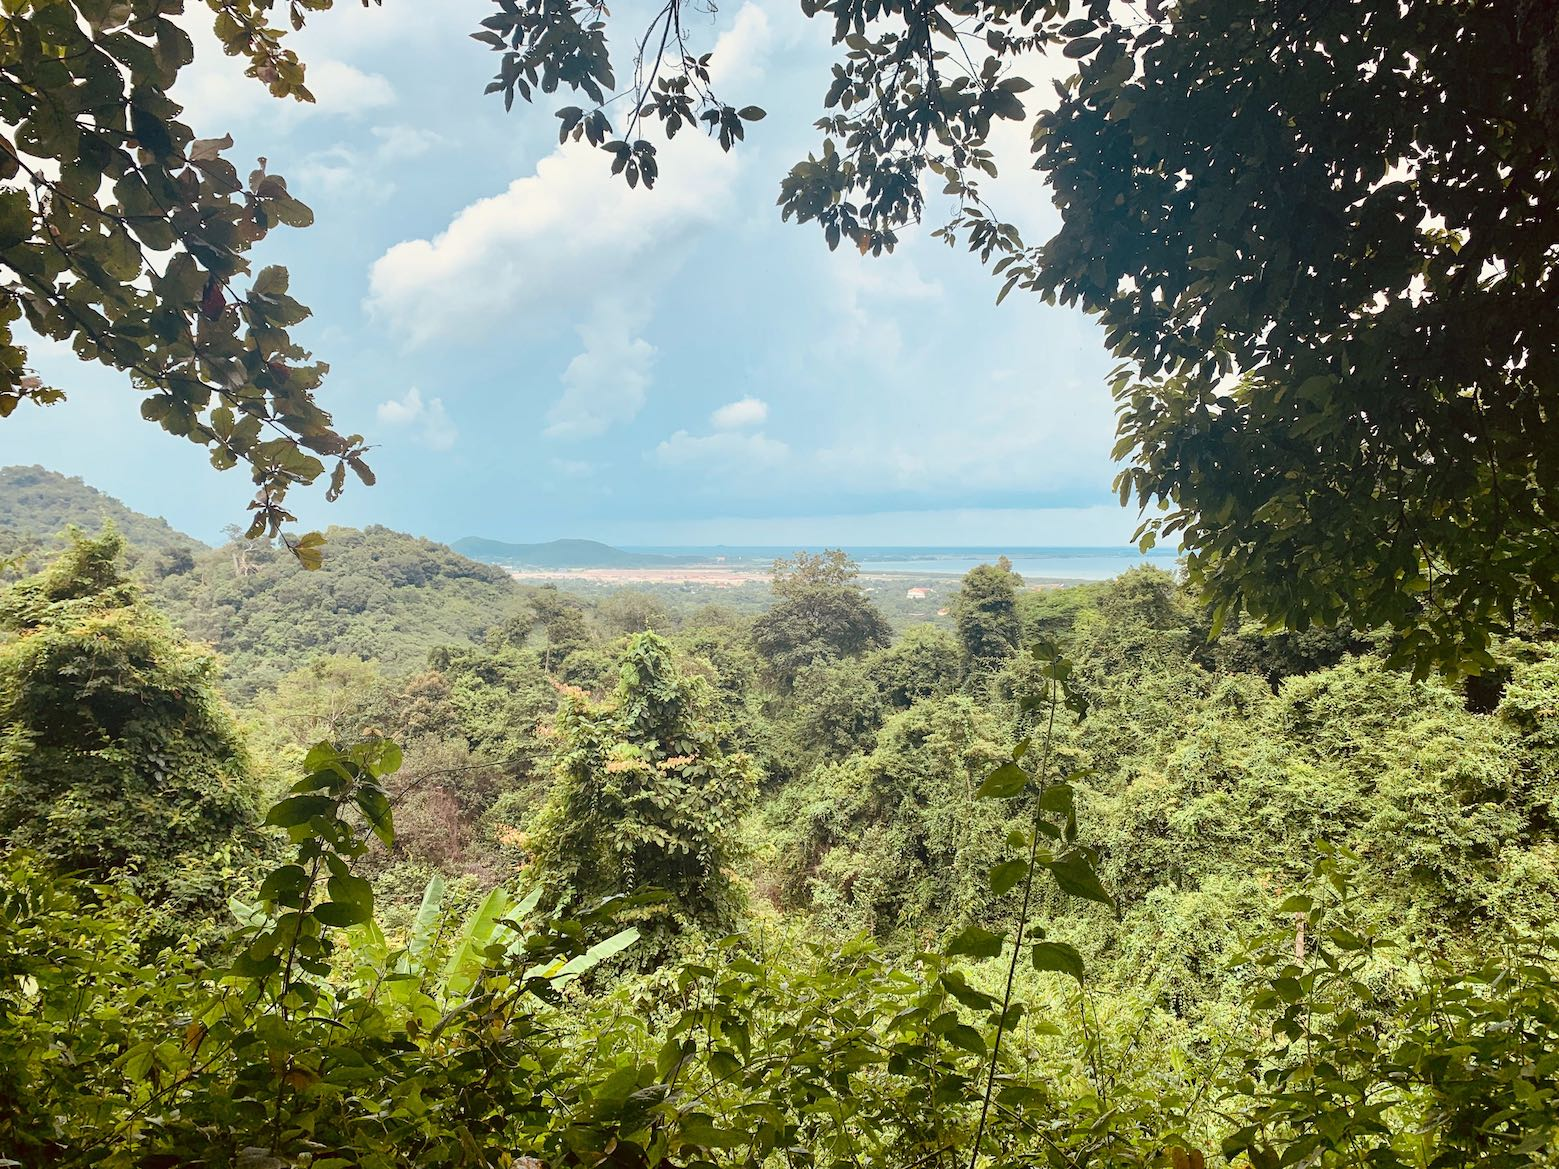 Views from the hiking trails of Kep National Park